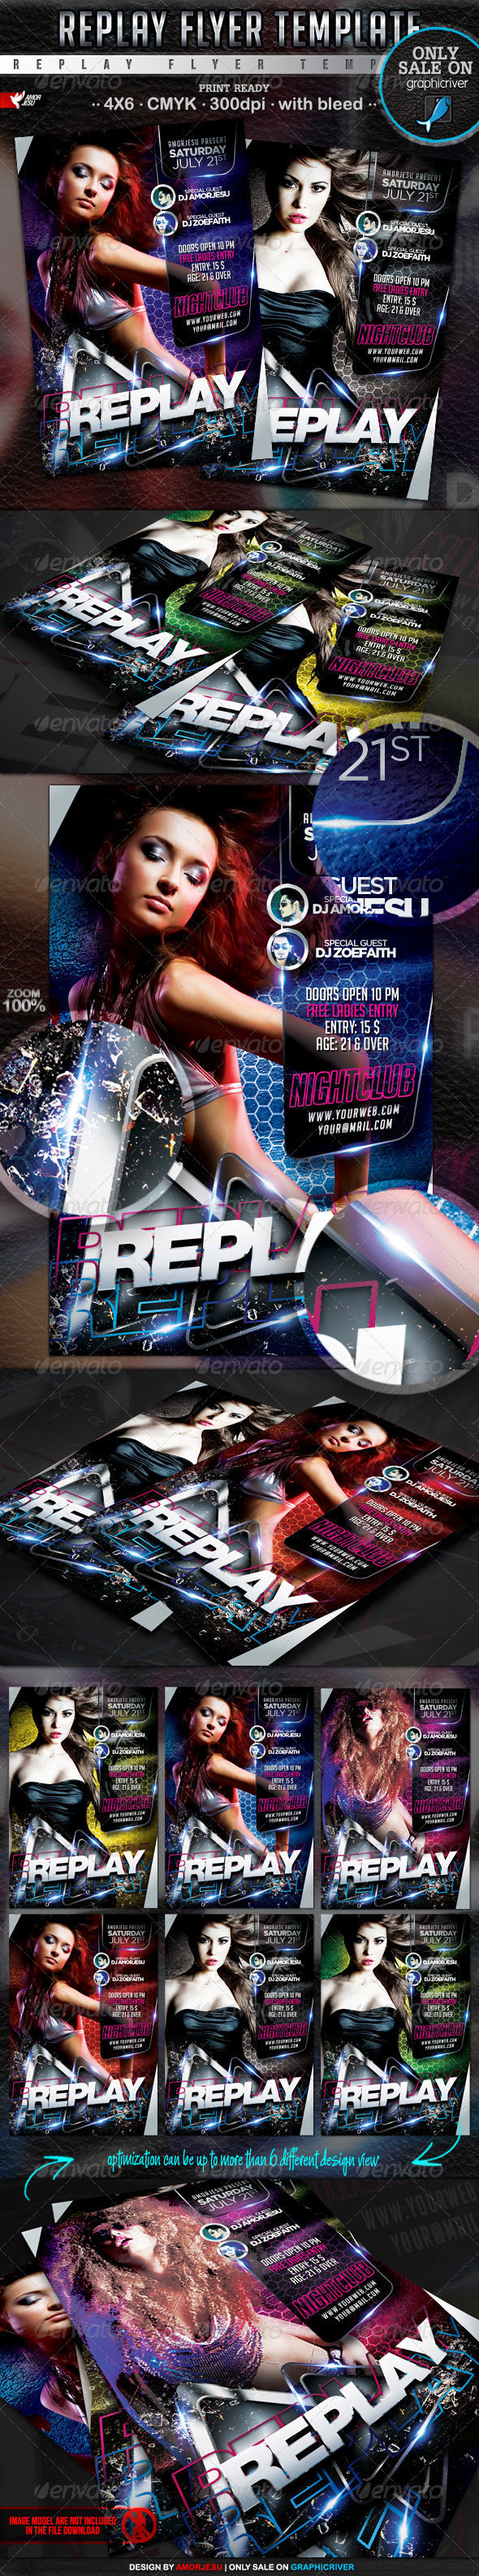 Replay Flyer Template - Events Flyers